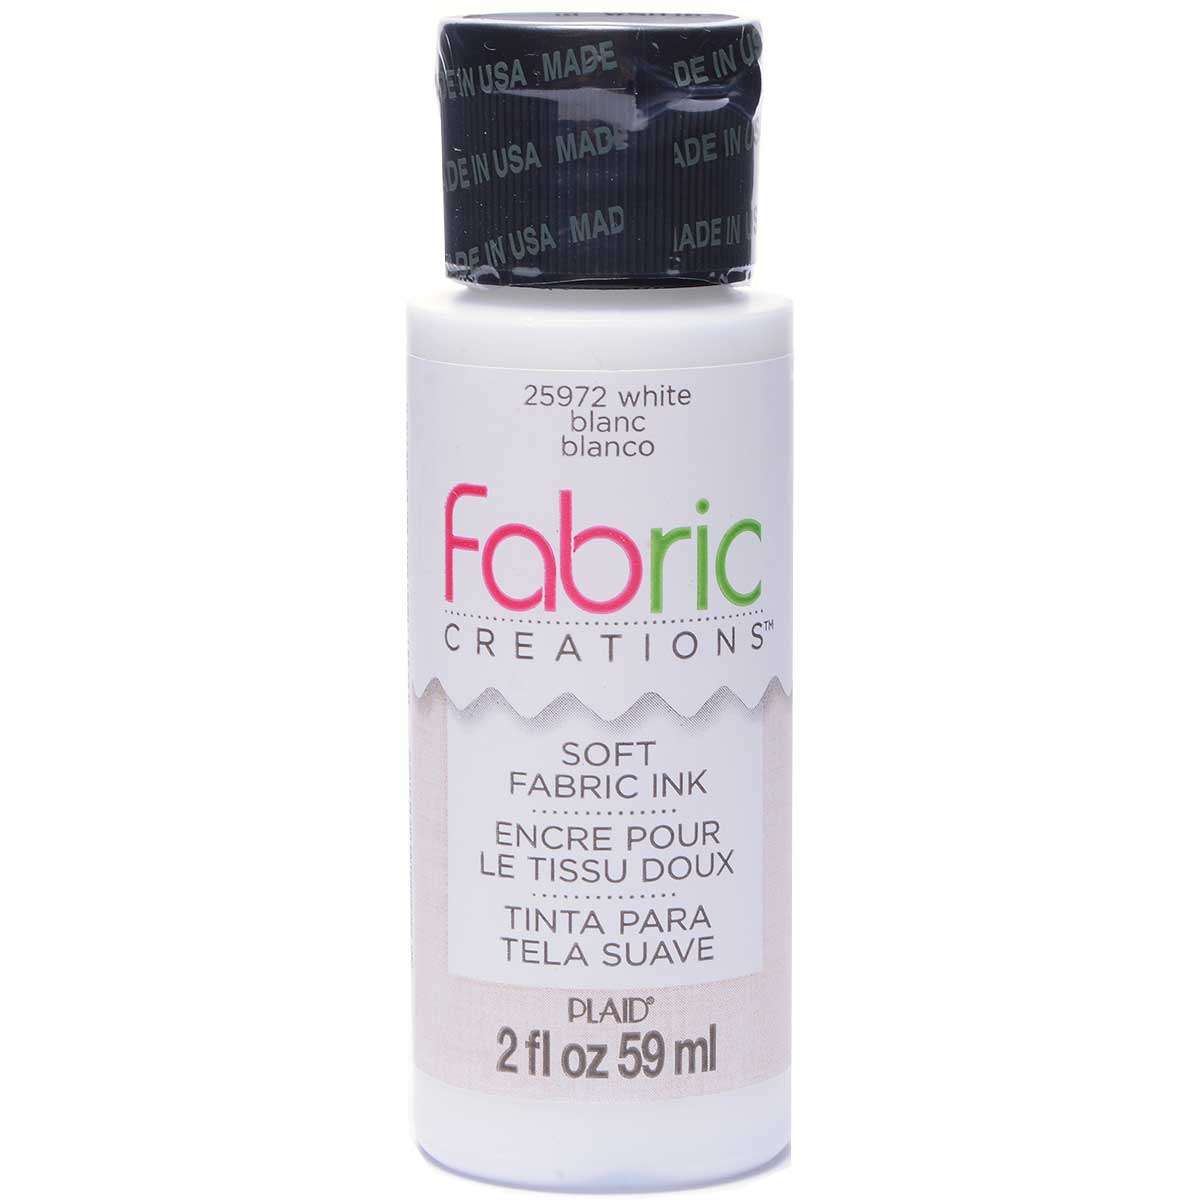 Fabric Creations™ Soft Fabric Inks - White, 2 oz. - 25972